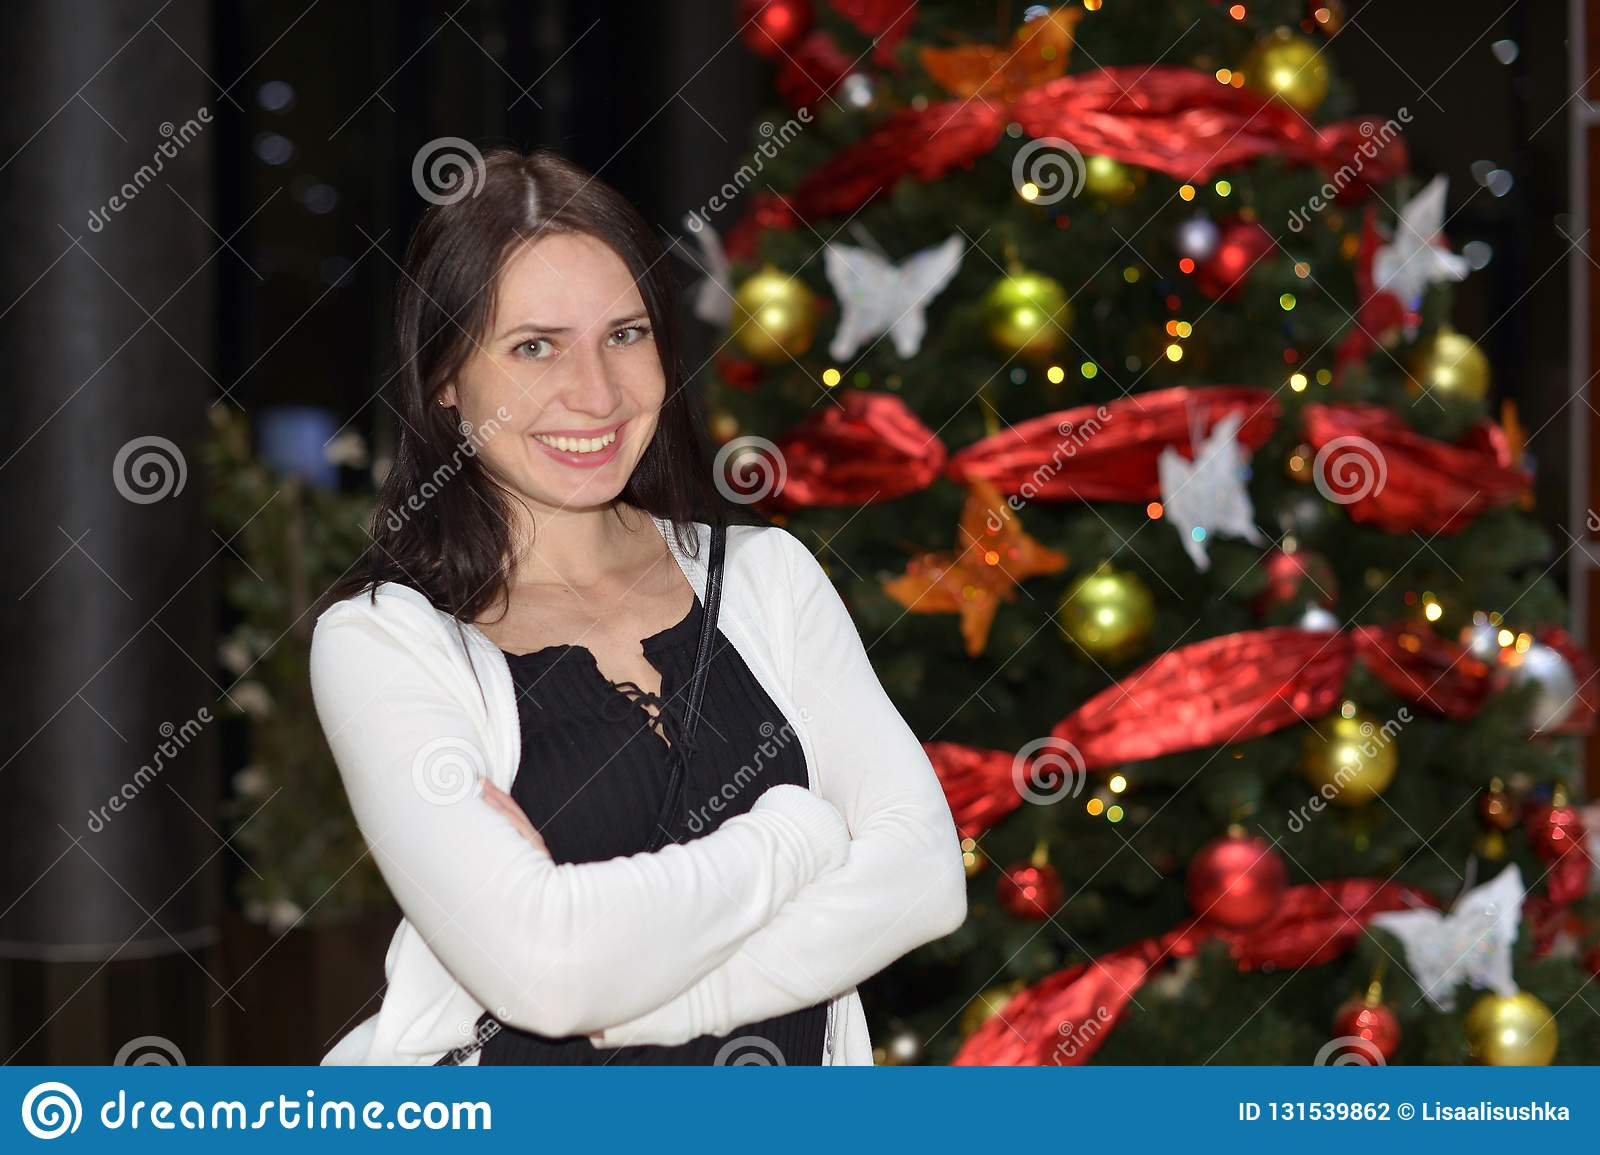 A young woman smiling stands near the Christmas tree.